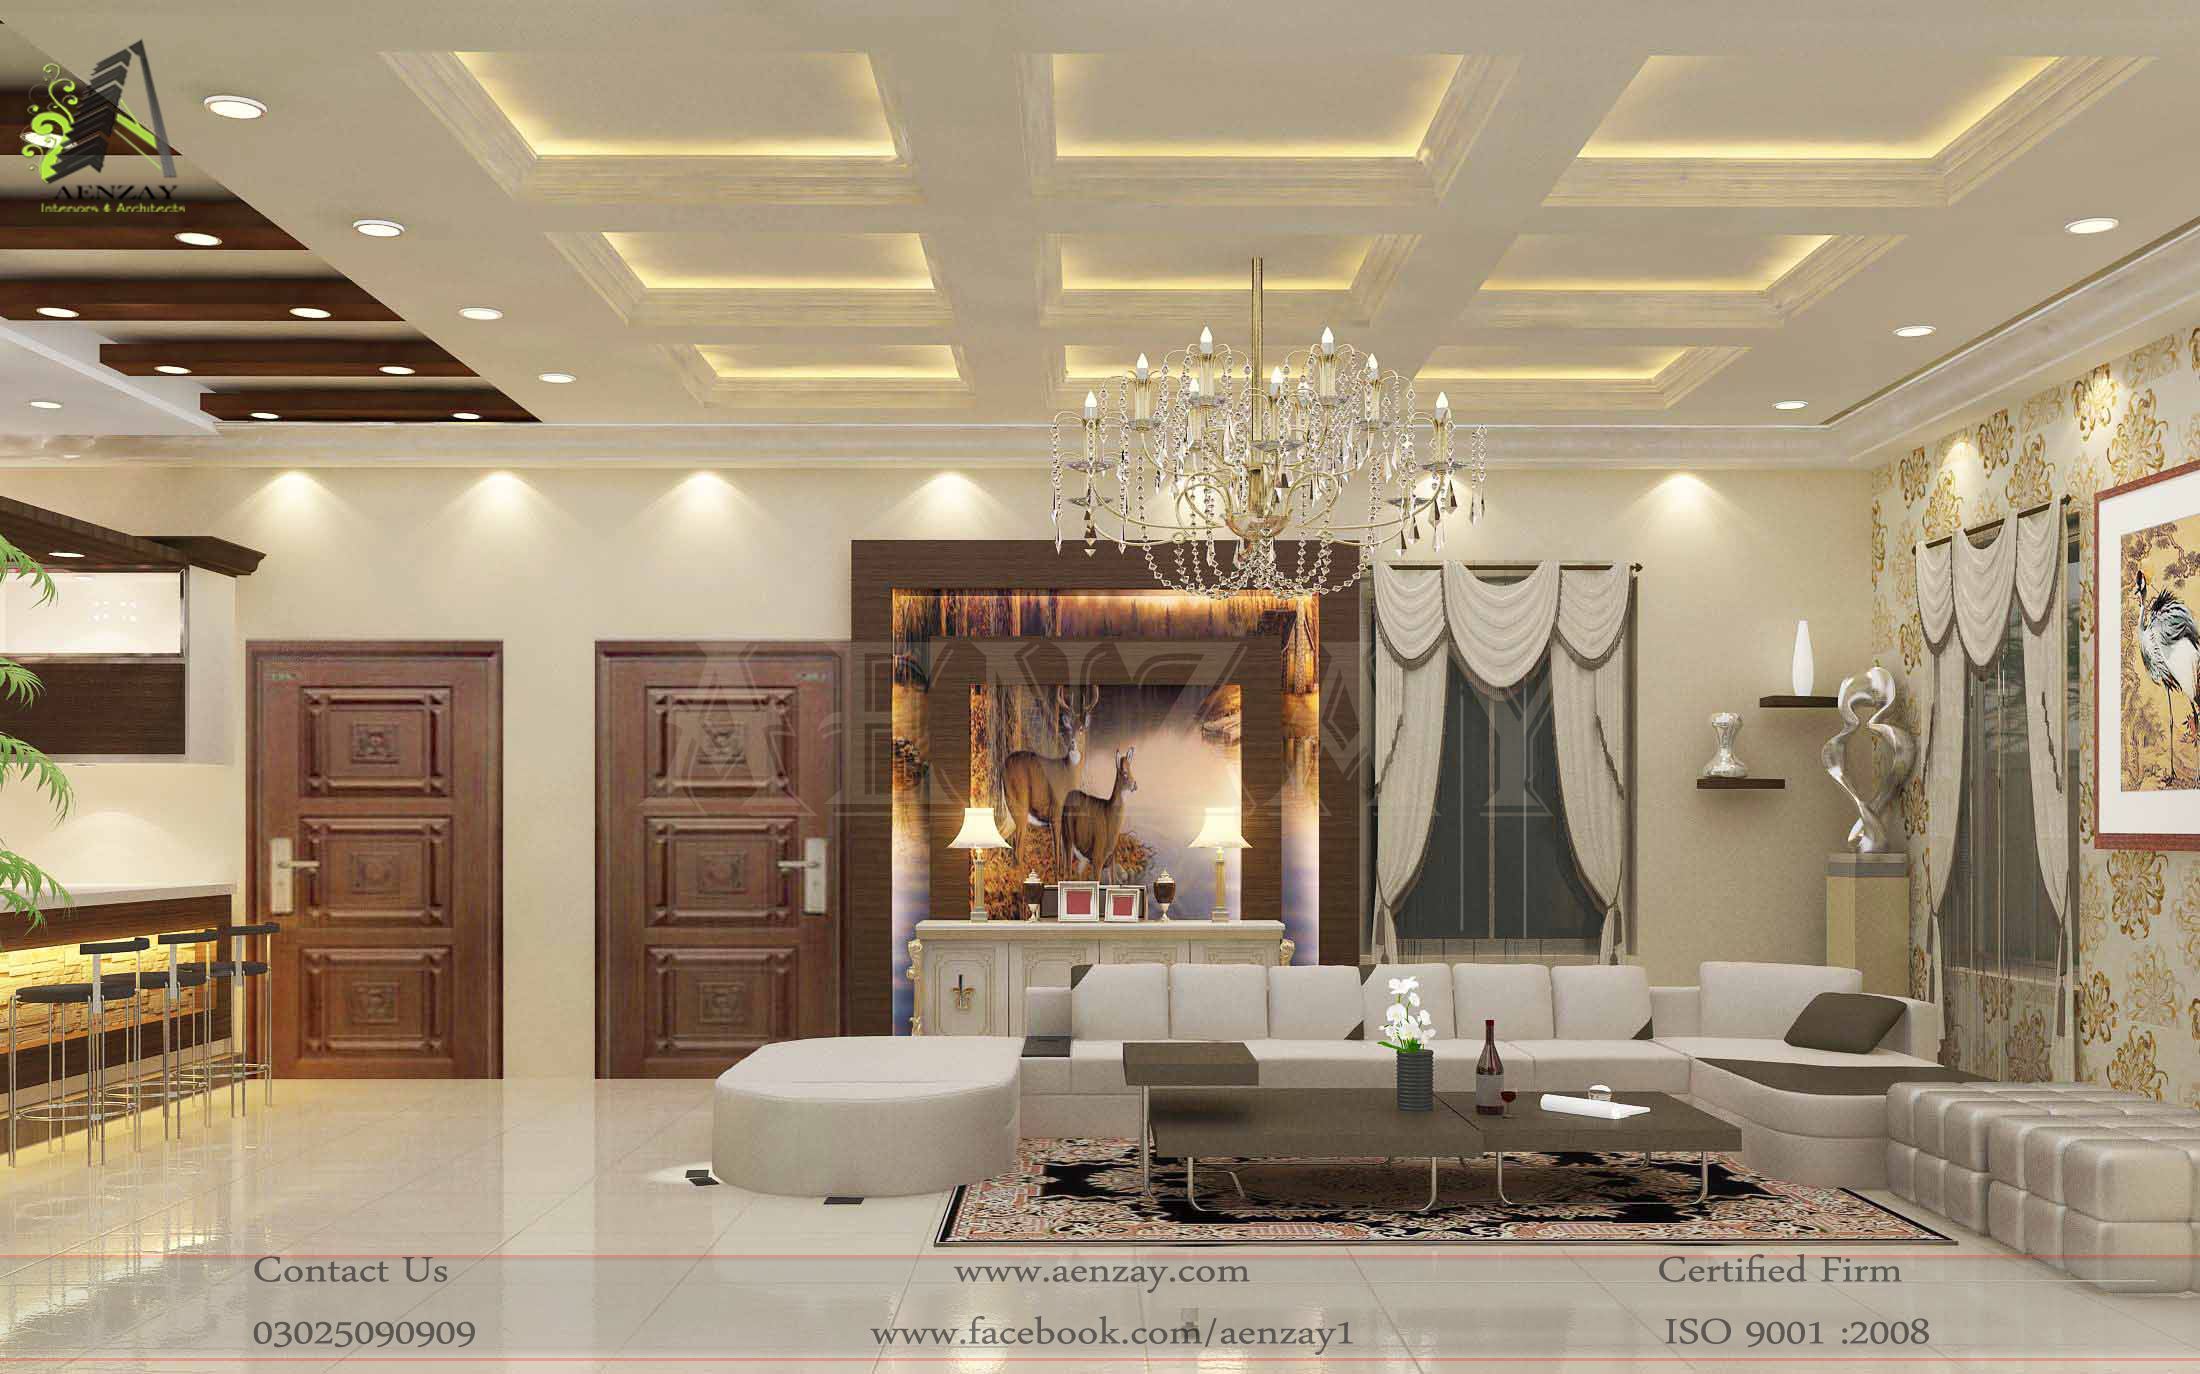 Design Lounge Buiten Lounge Area Designs Aenzay Interiors And Architecture